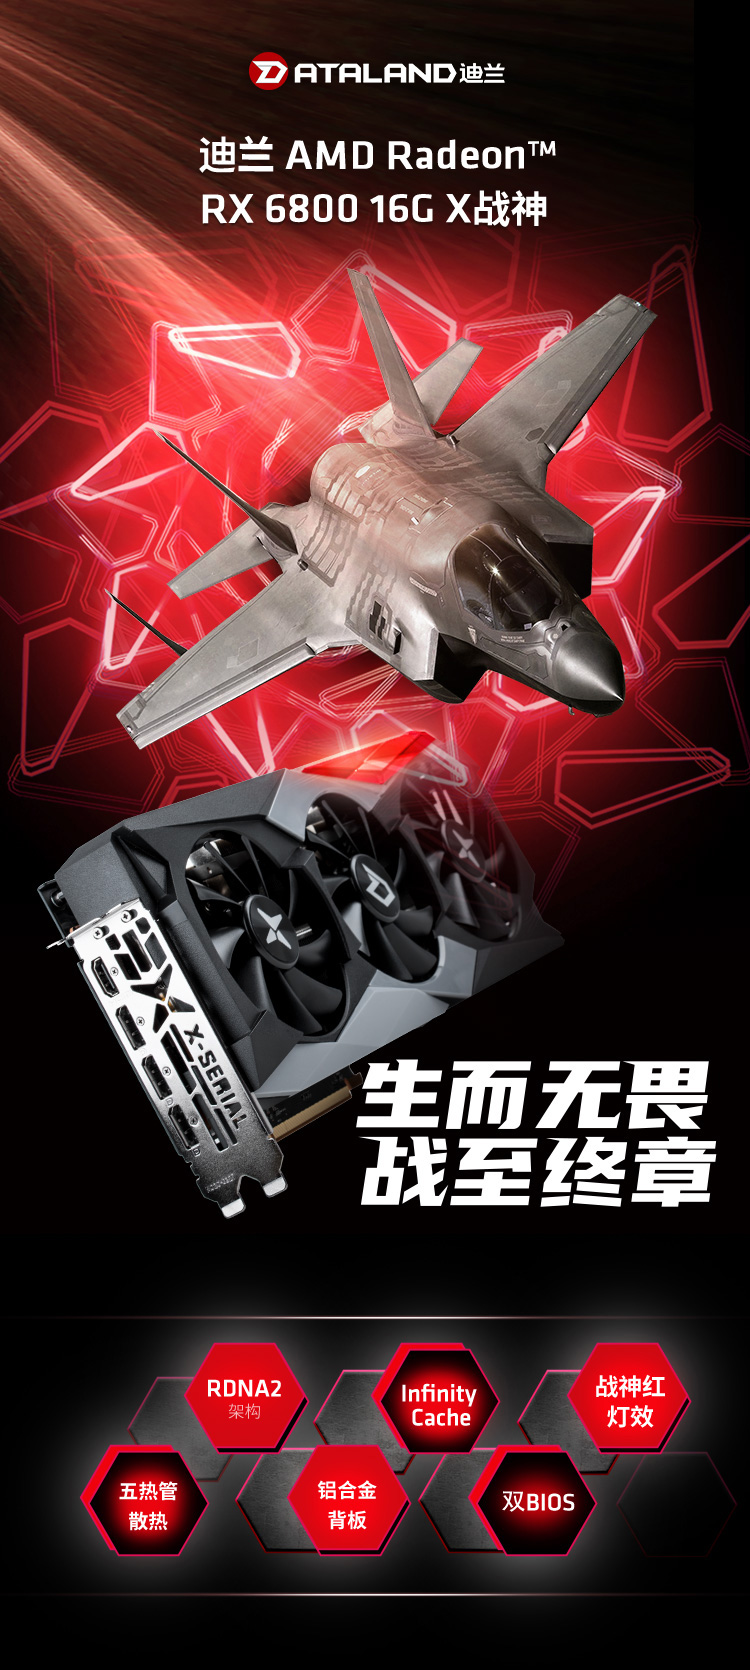 RX 6800 16G X战神